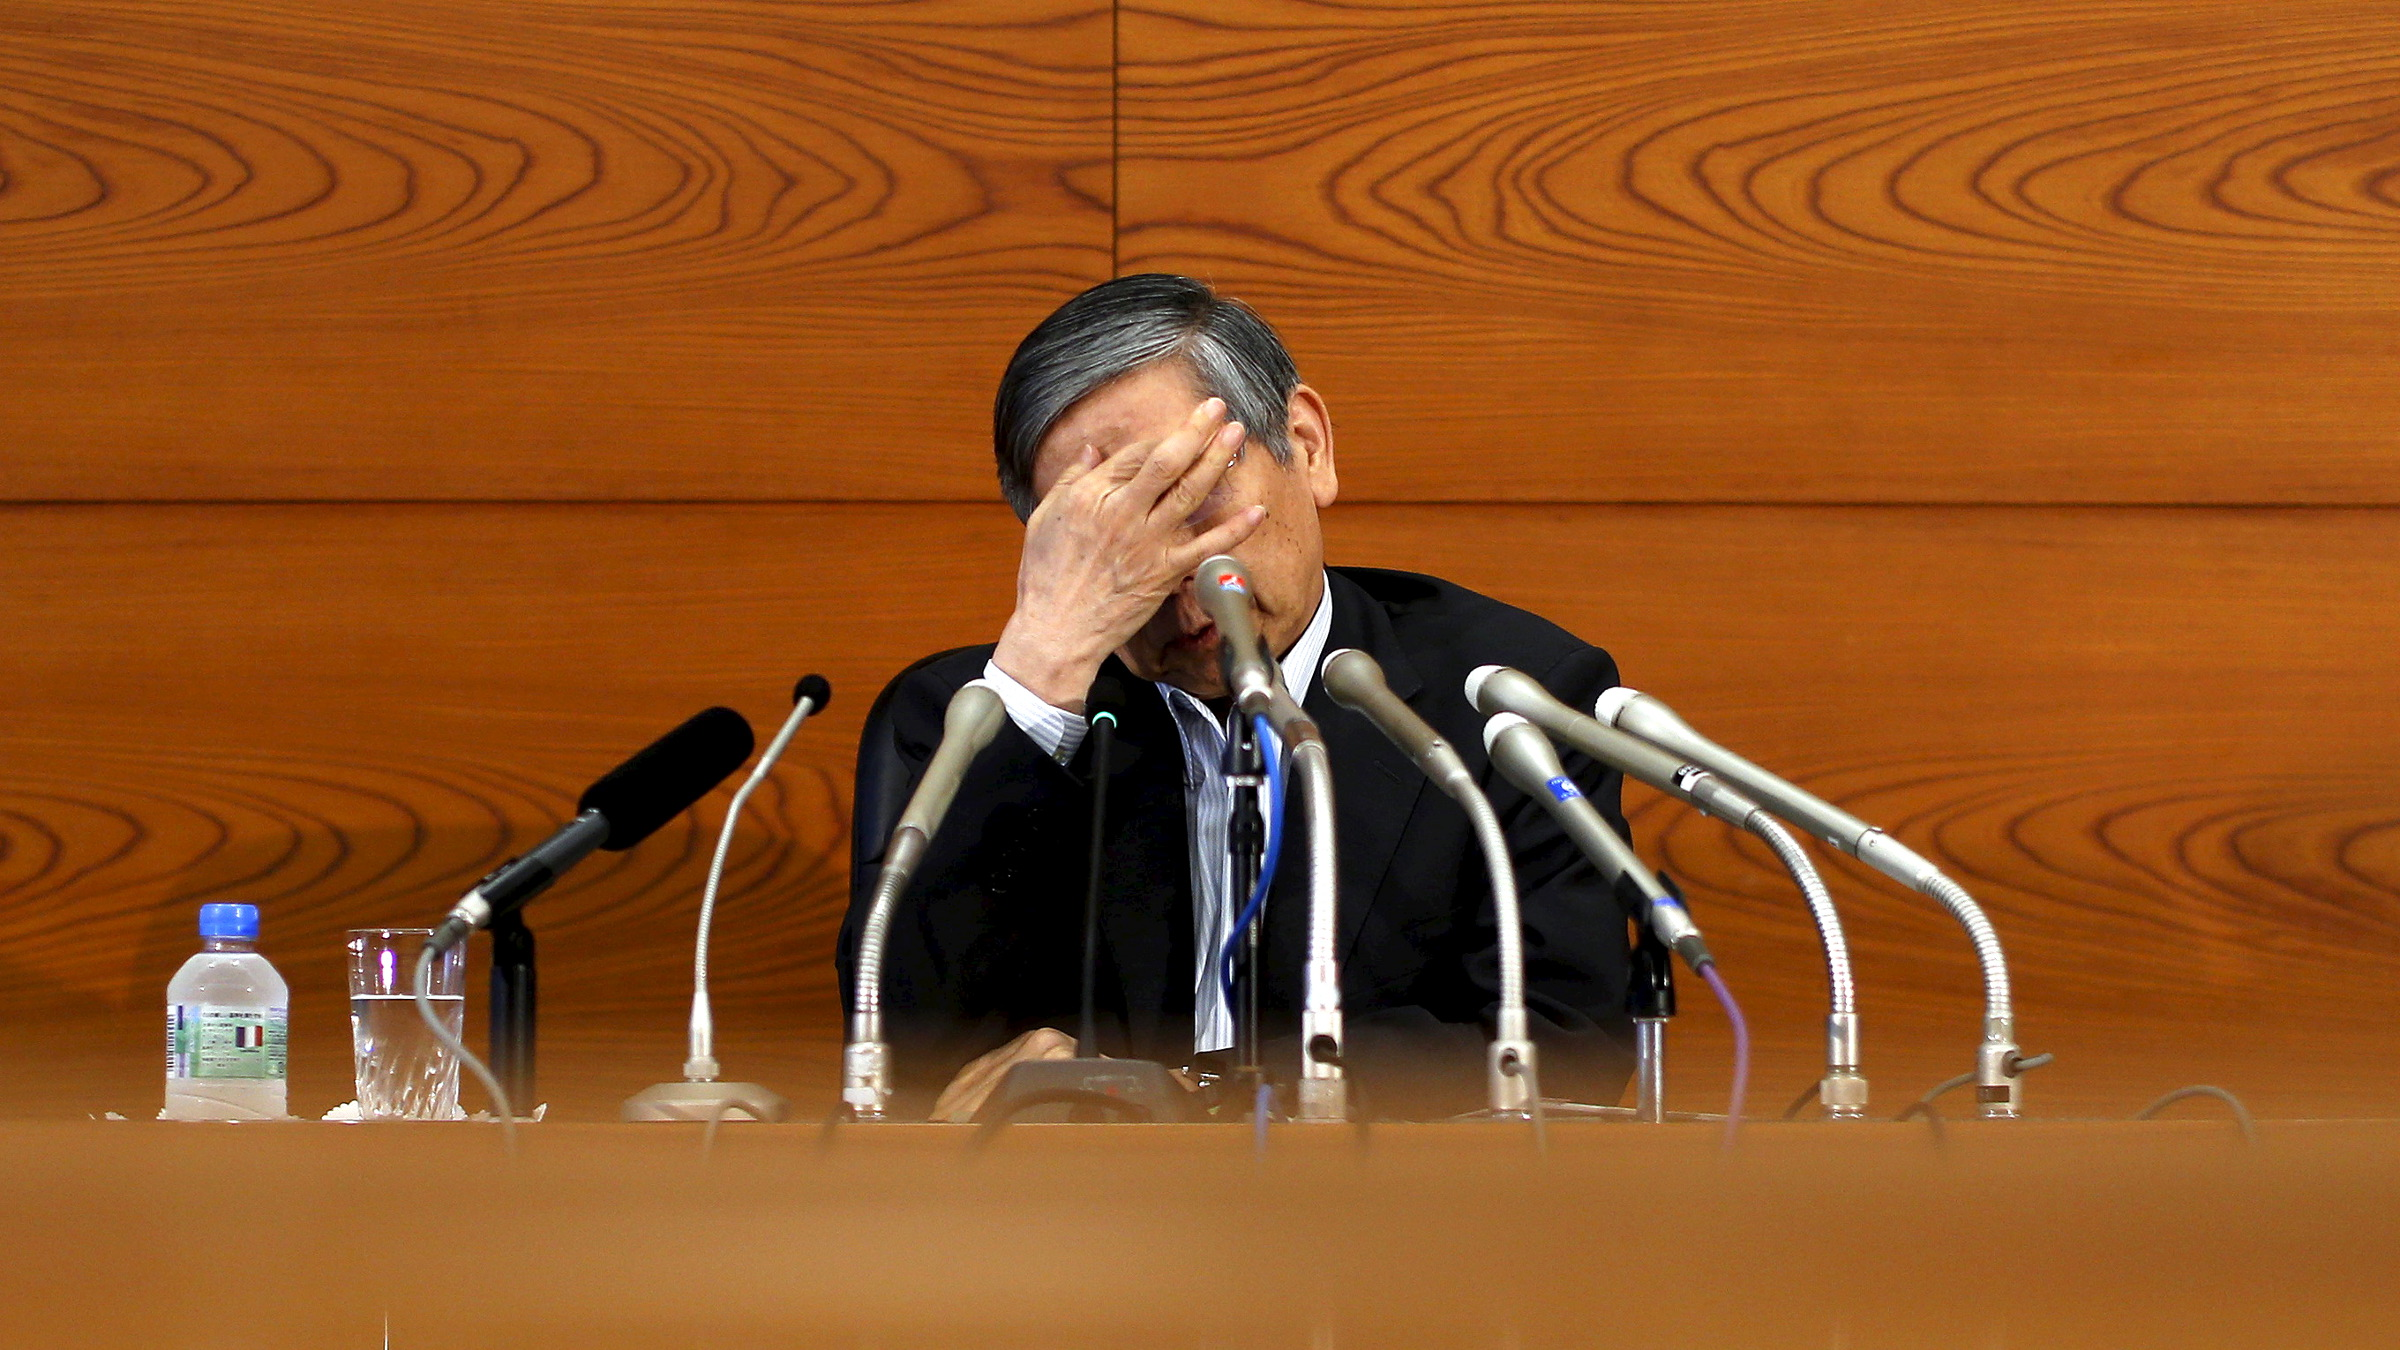 Bank of Japan (BOJ) Governor Haruhiko Kuroda touches his face during a news conference at the BOJ headquarters in Tokyo, July 15, 2015. The Bank of Japan trimmed its economic growth forecast on Wednesday but held off on offering fresh stimulus, convinced that an expected pick up in consumption will help accelerate inflation toward its 2 percent target.